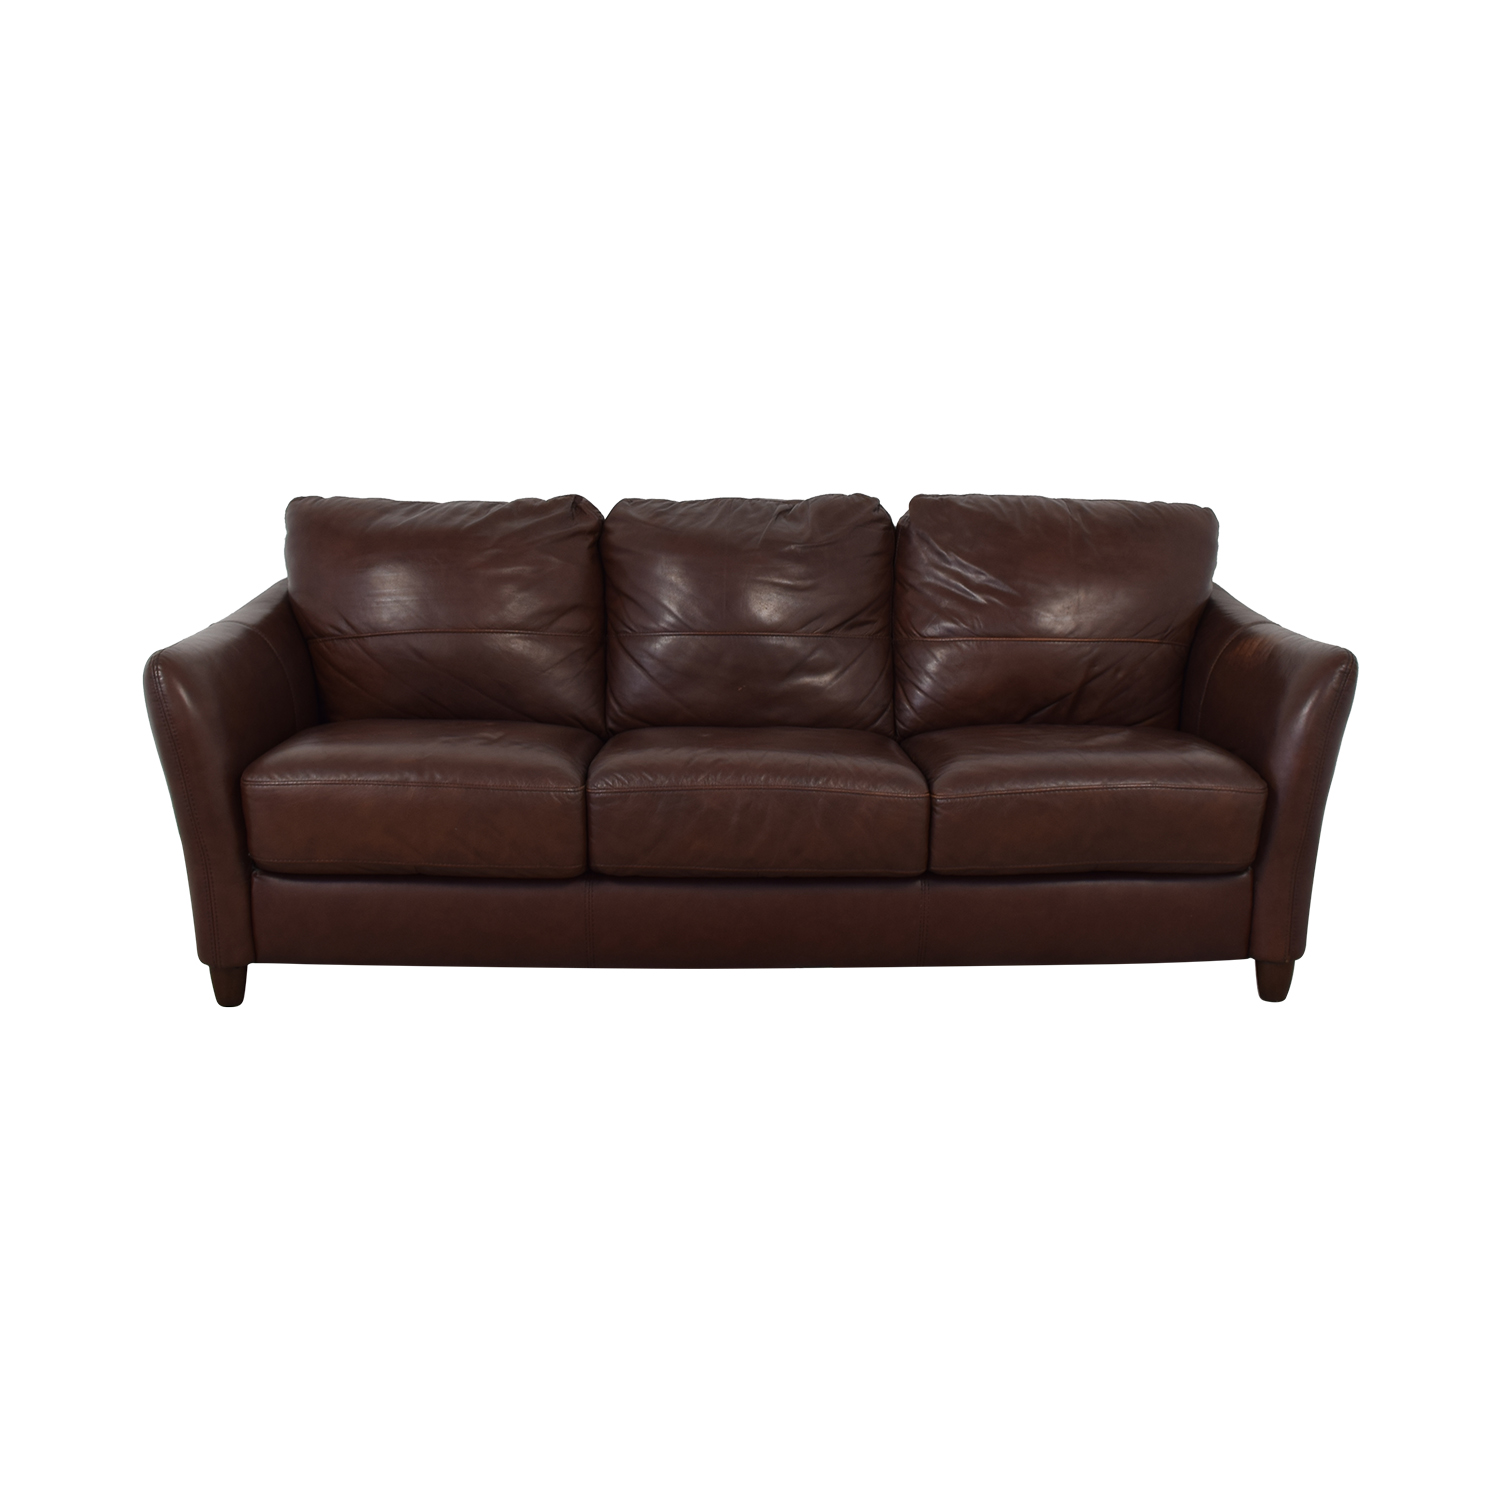 buy Raymour & Flanigan Leather Sofa Raymour & Flanigan Classic Sofas